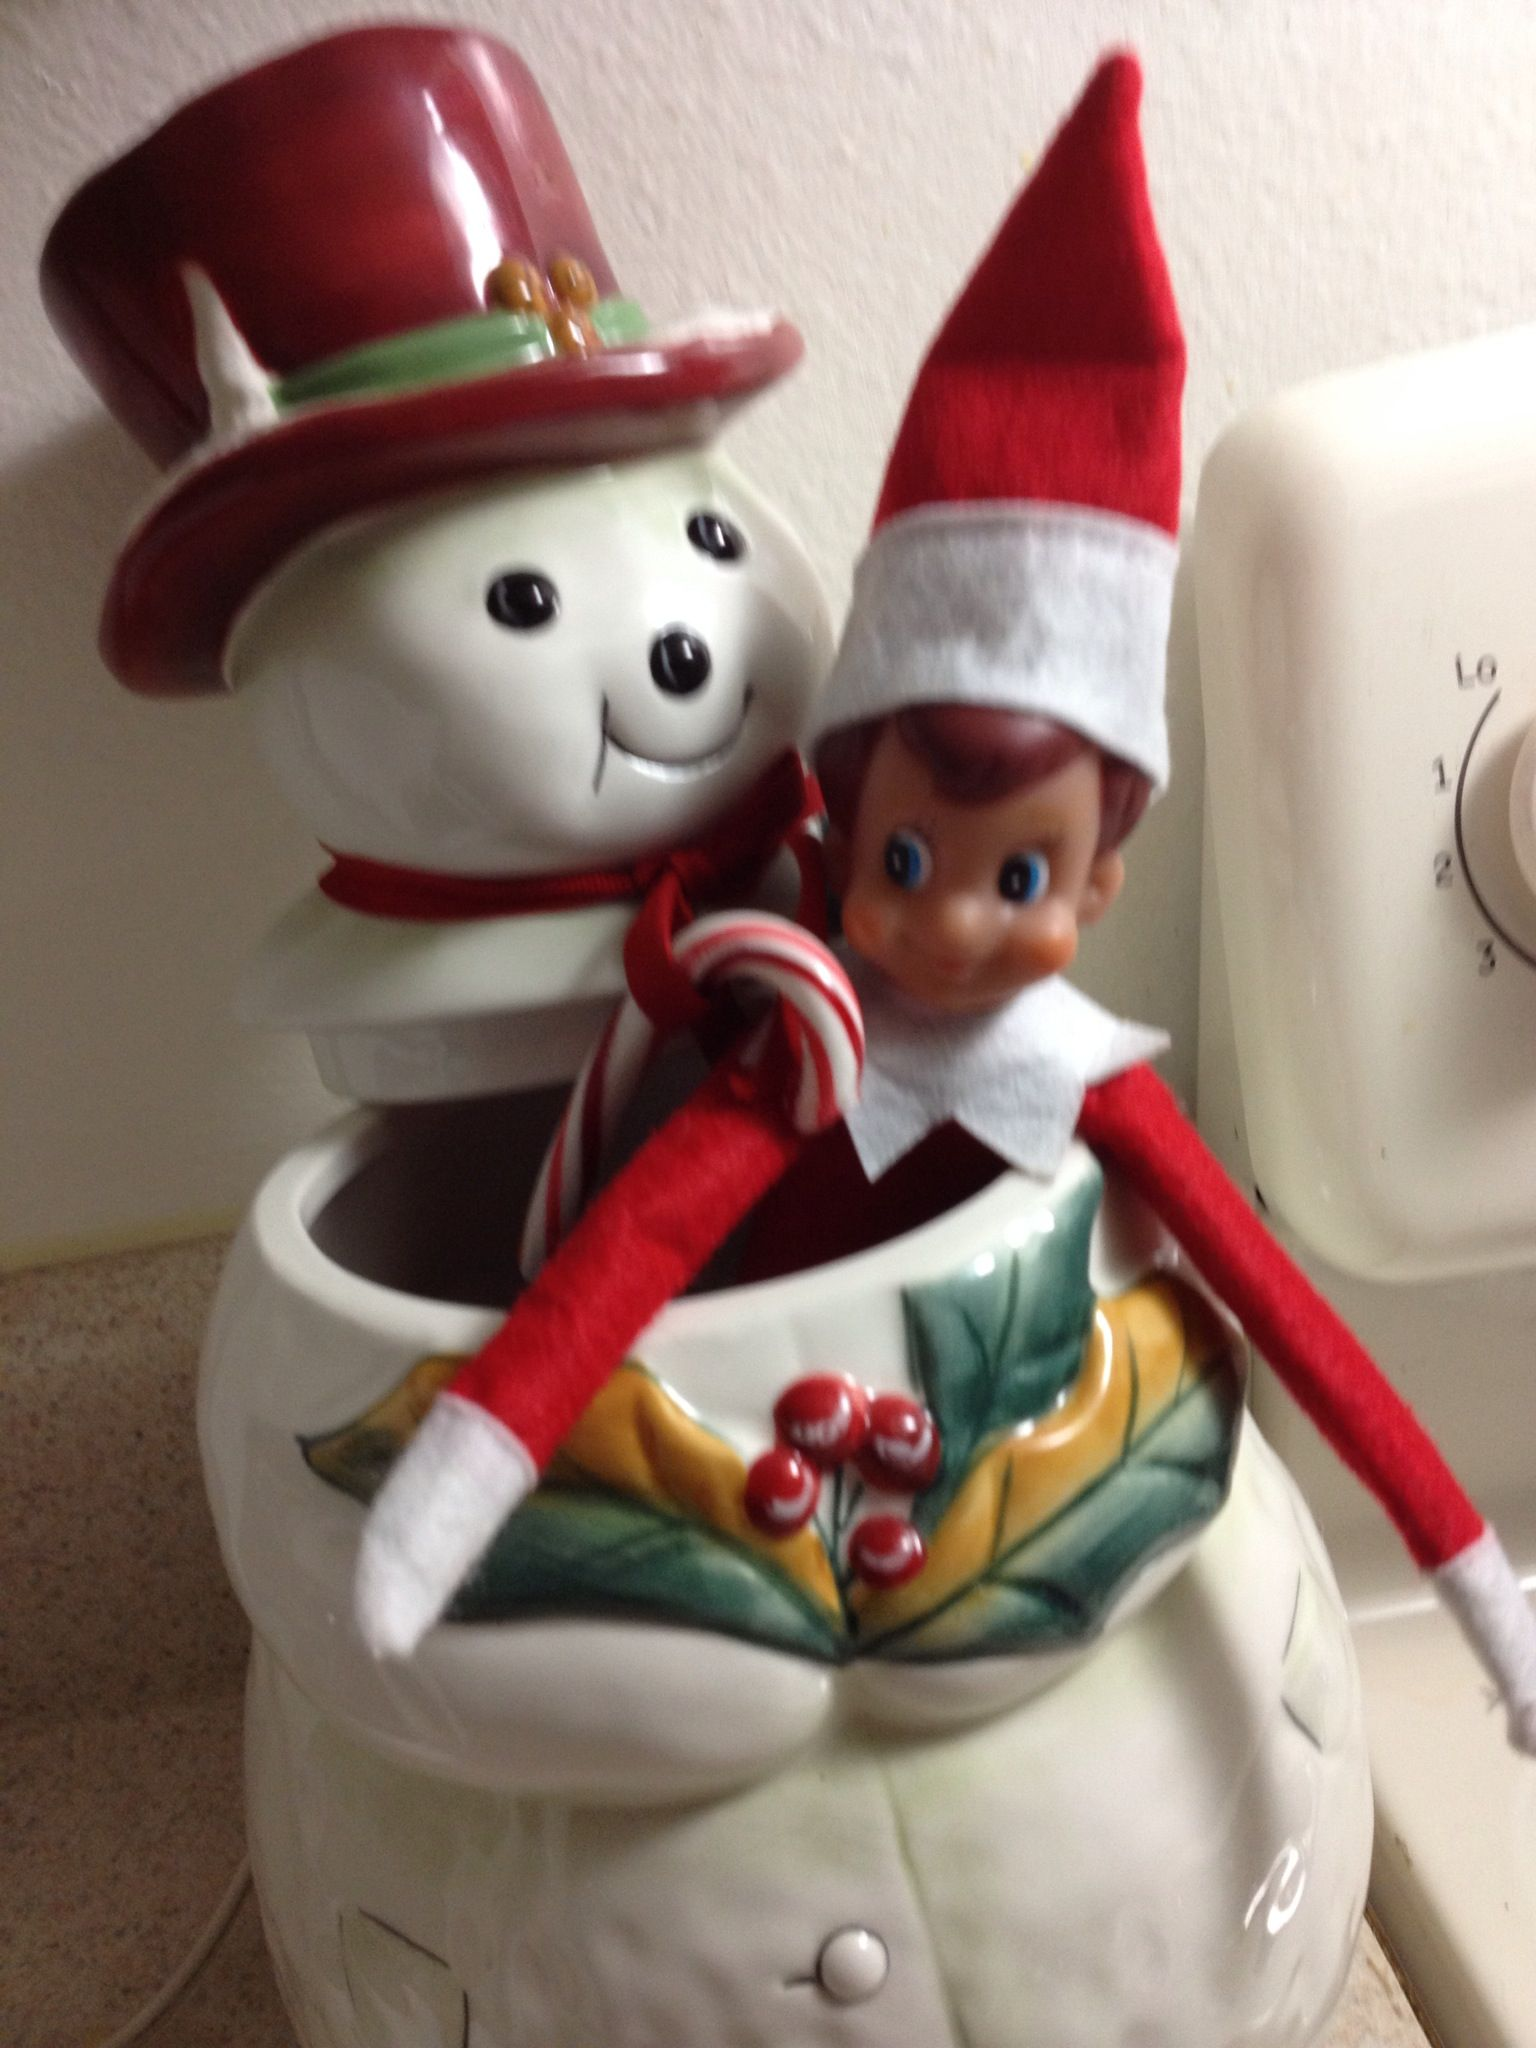 Elf stuck in the cookie jar